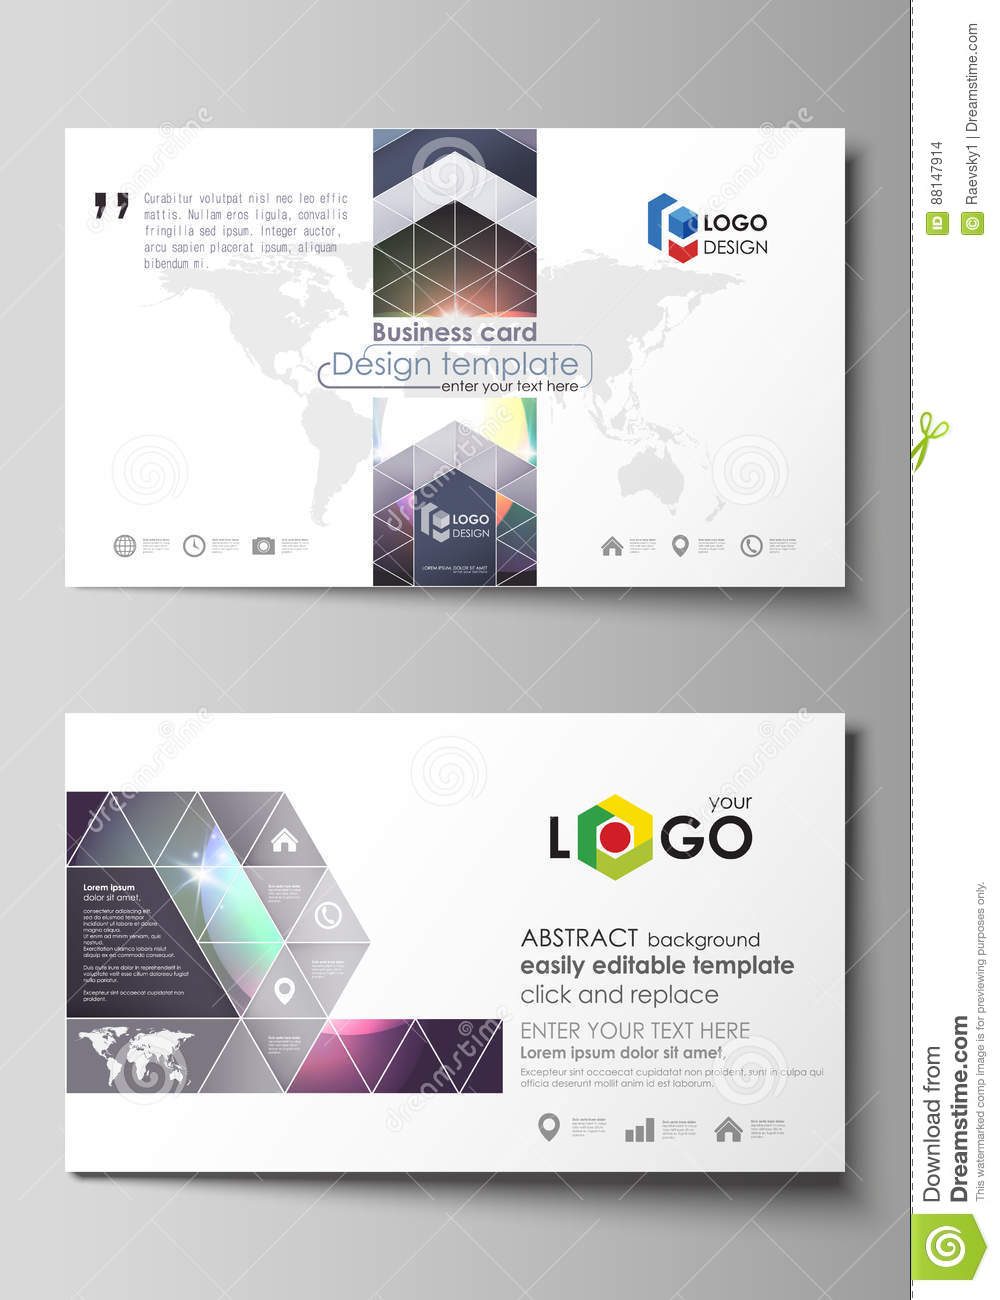 Business card templates easy editable layout abstract vector business card templates easy editable layout abstract vector template retro style mystical wajeb Image collections